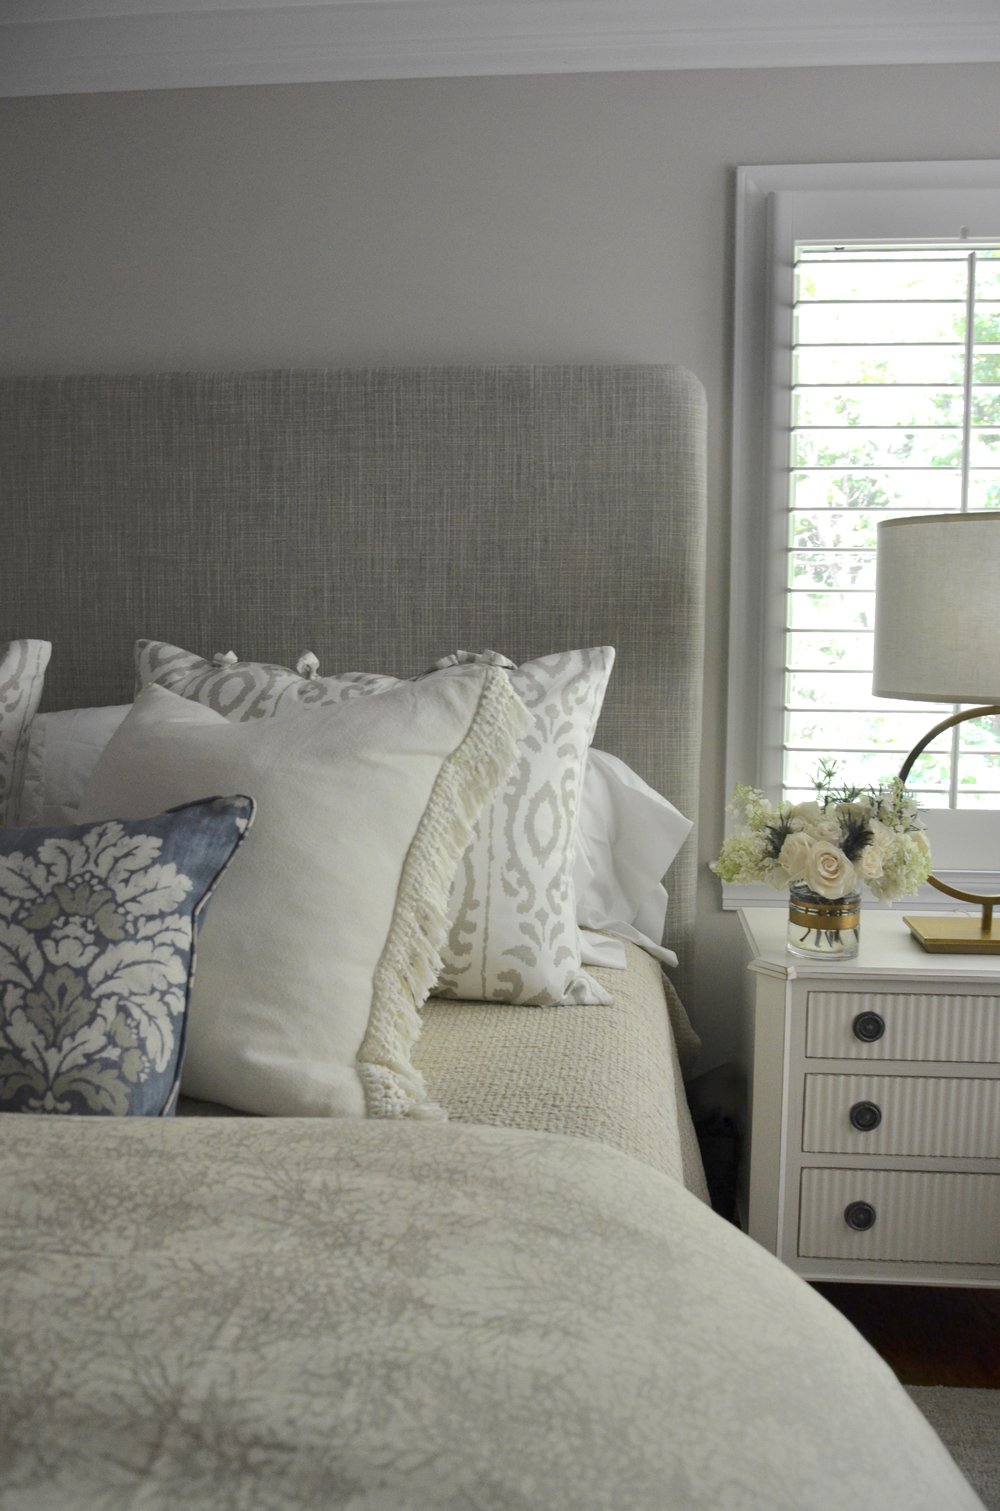 Master Bedroom Re Design in McLean, VA by Valerianne of DC